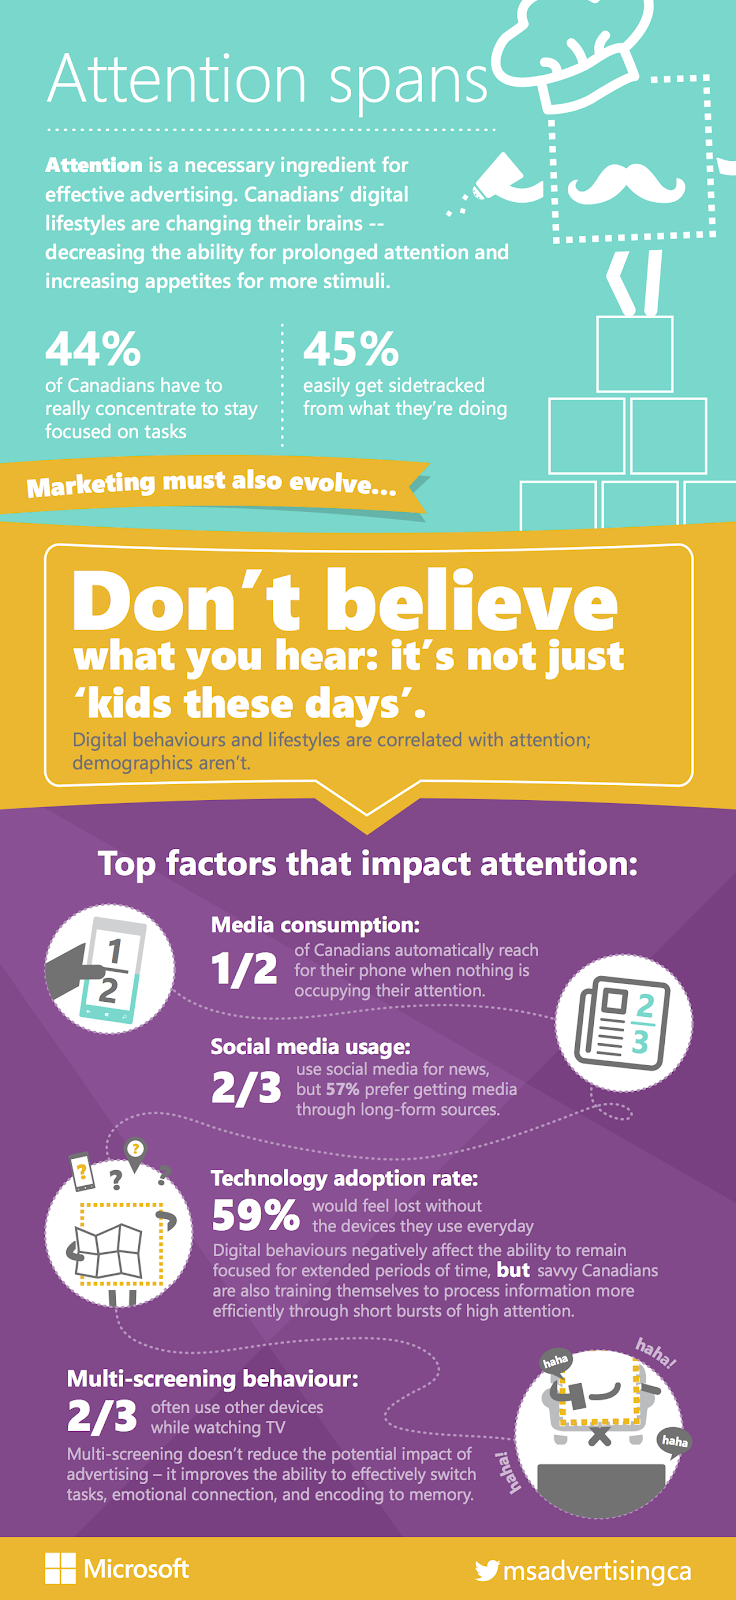 Microsoft Attention Spans Infographic